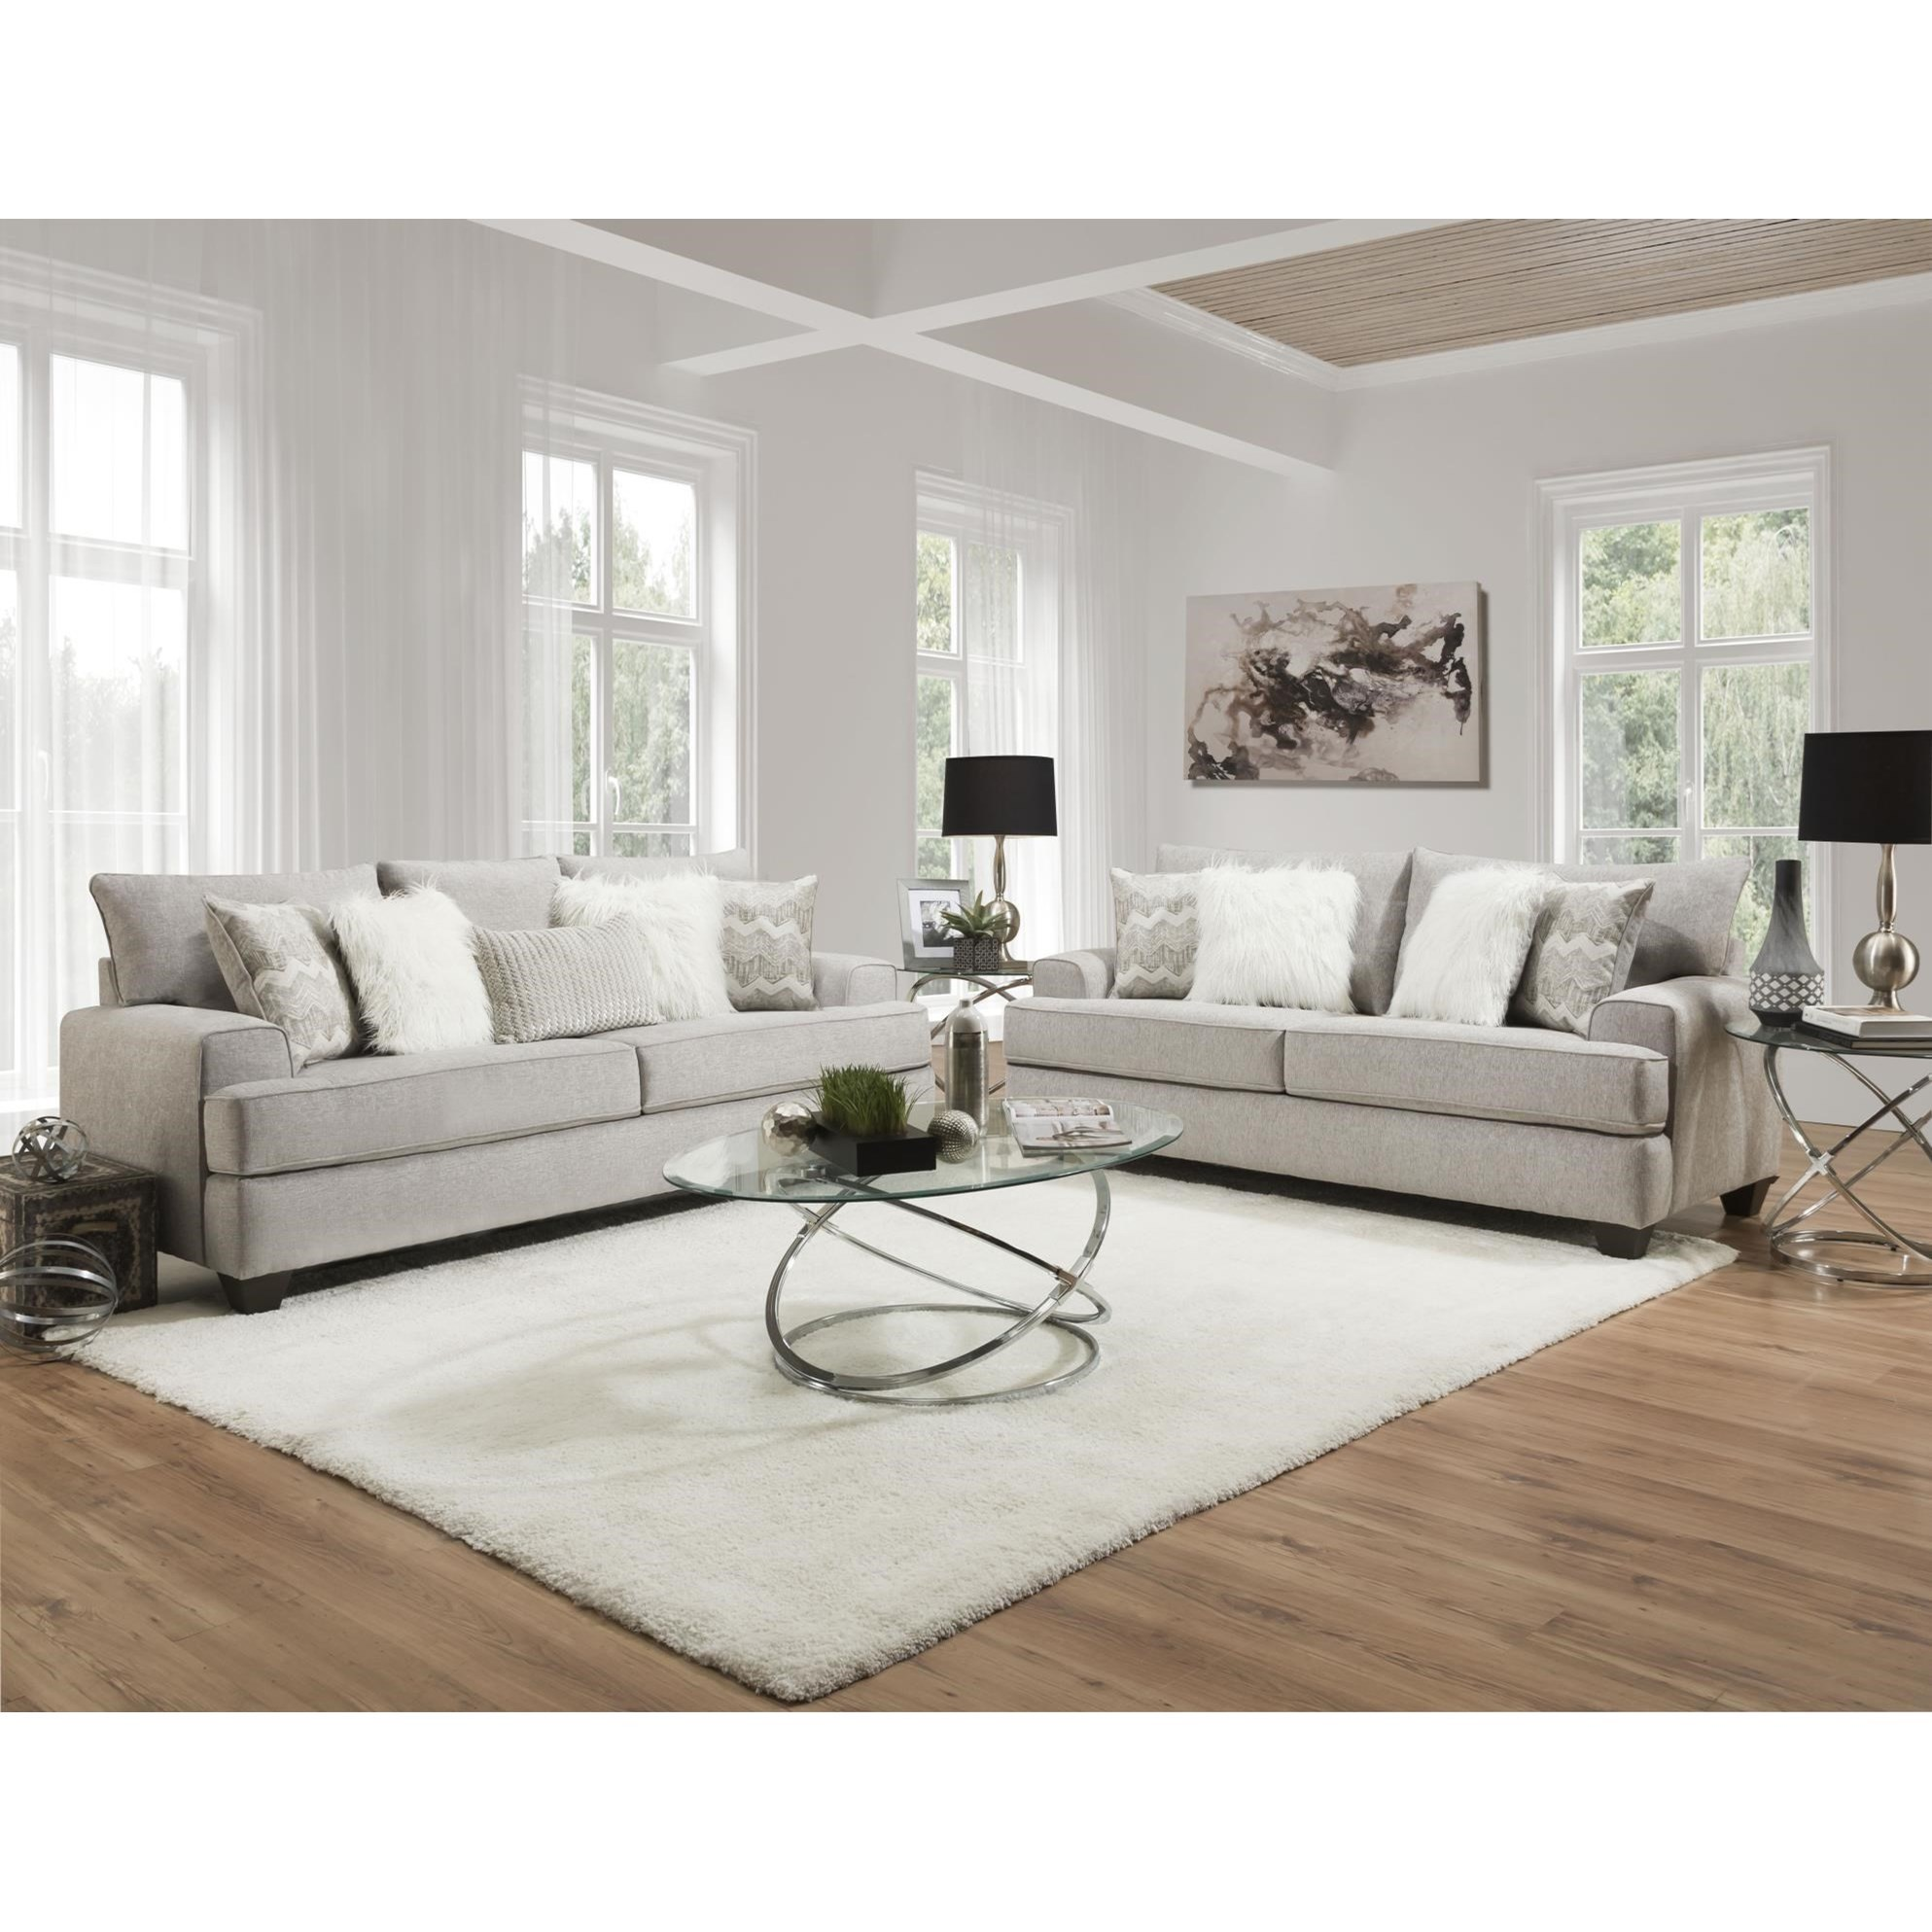 428 Living Room Group by Albany at A1 Furniture & Mattress